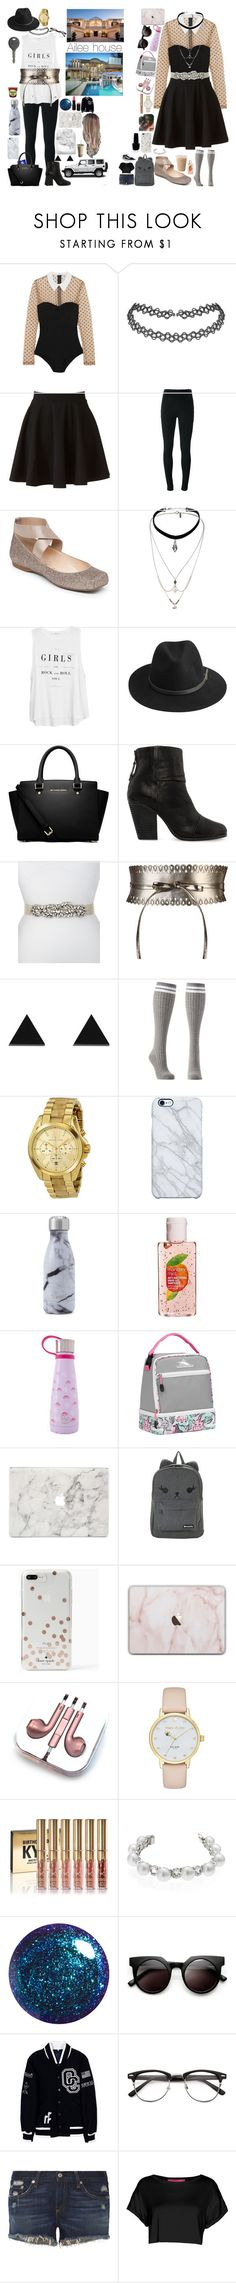 """""""Me going to Ailee's house after school"""" by keeliewatsonoffical ❤ liked on Polyvore featuring Fleur du Mal, LC Lauren Conrad, Givenchy, Topshop, MANGO, BeckSöndergaard, MICHAEL Michael Kors, rag & bone, Deborah Drattell and Wolf & Moon"""